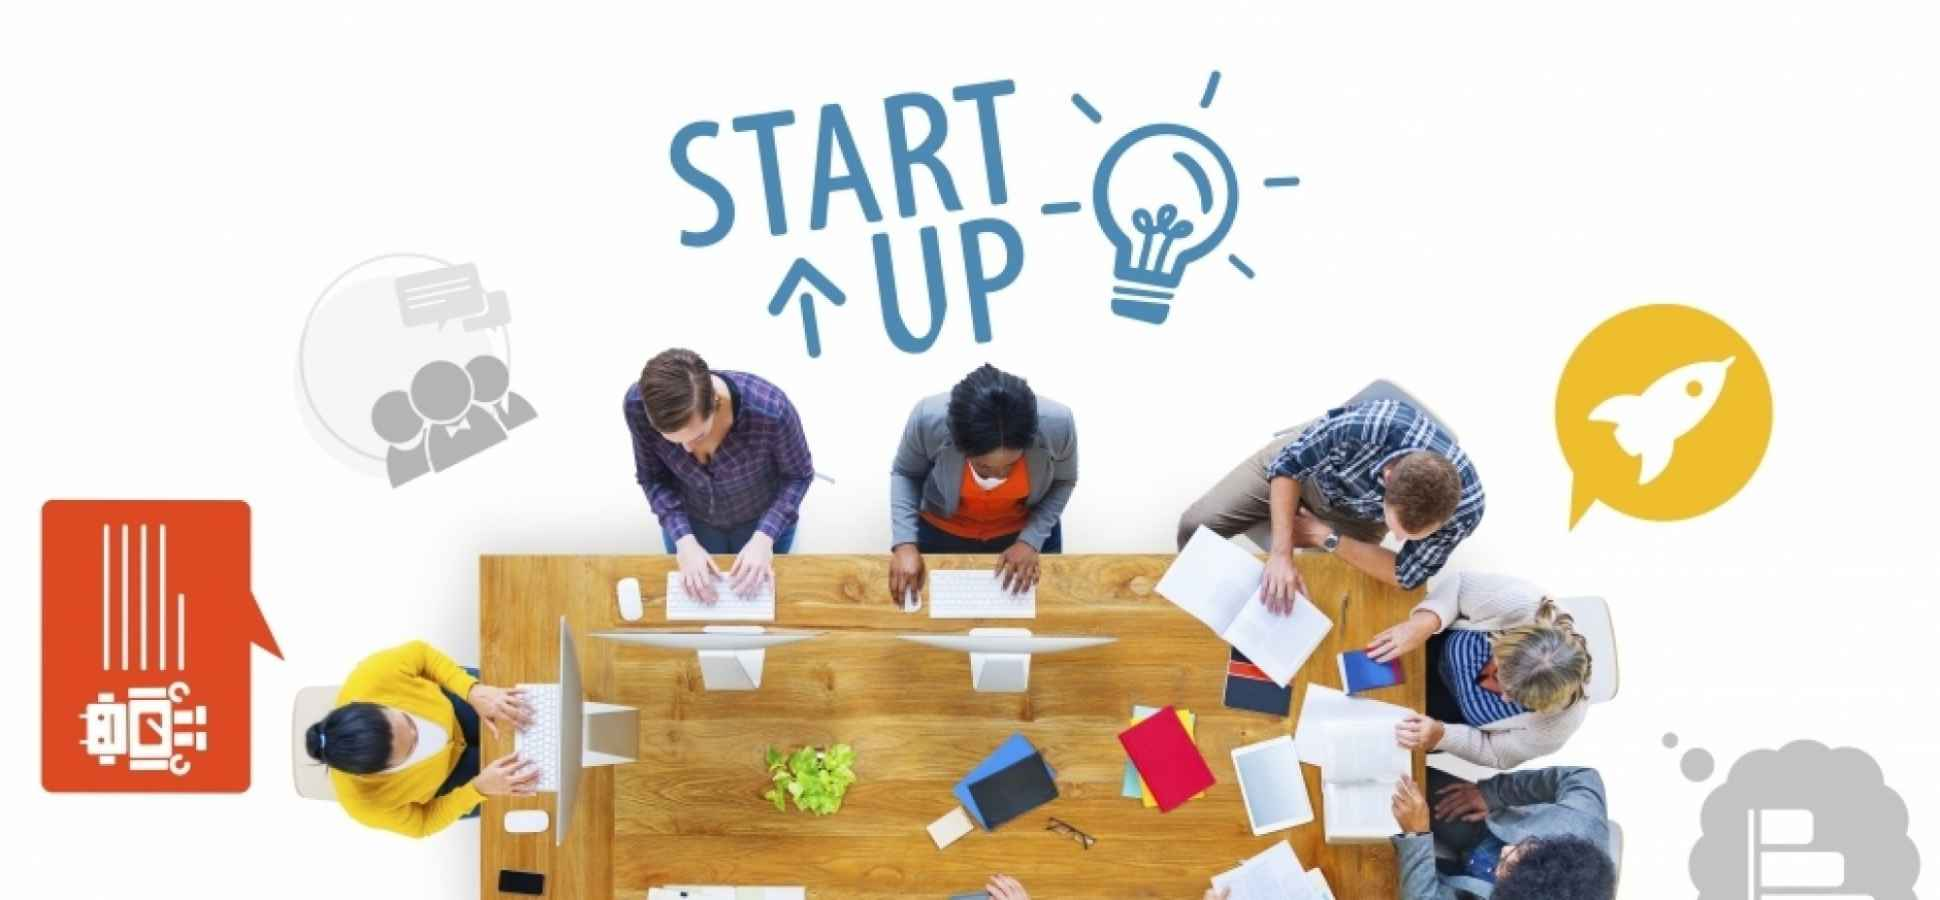 The Top 5 Trends for Startups in 2016